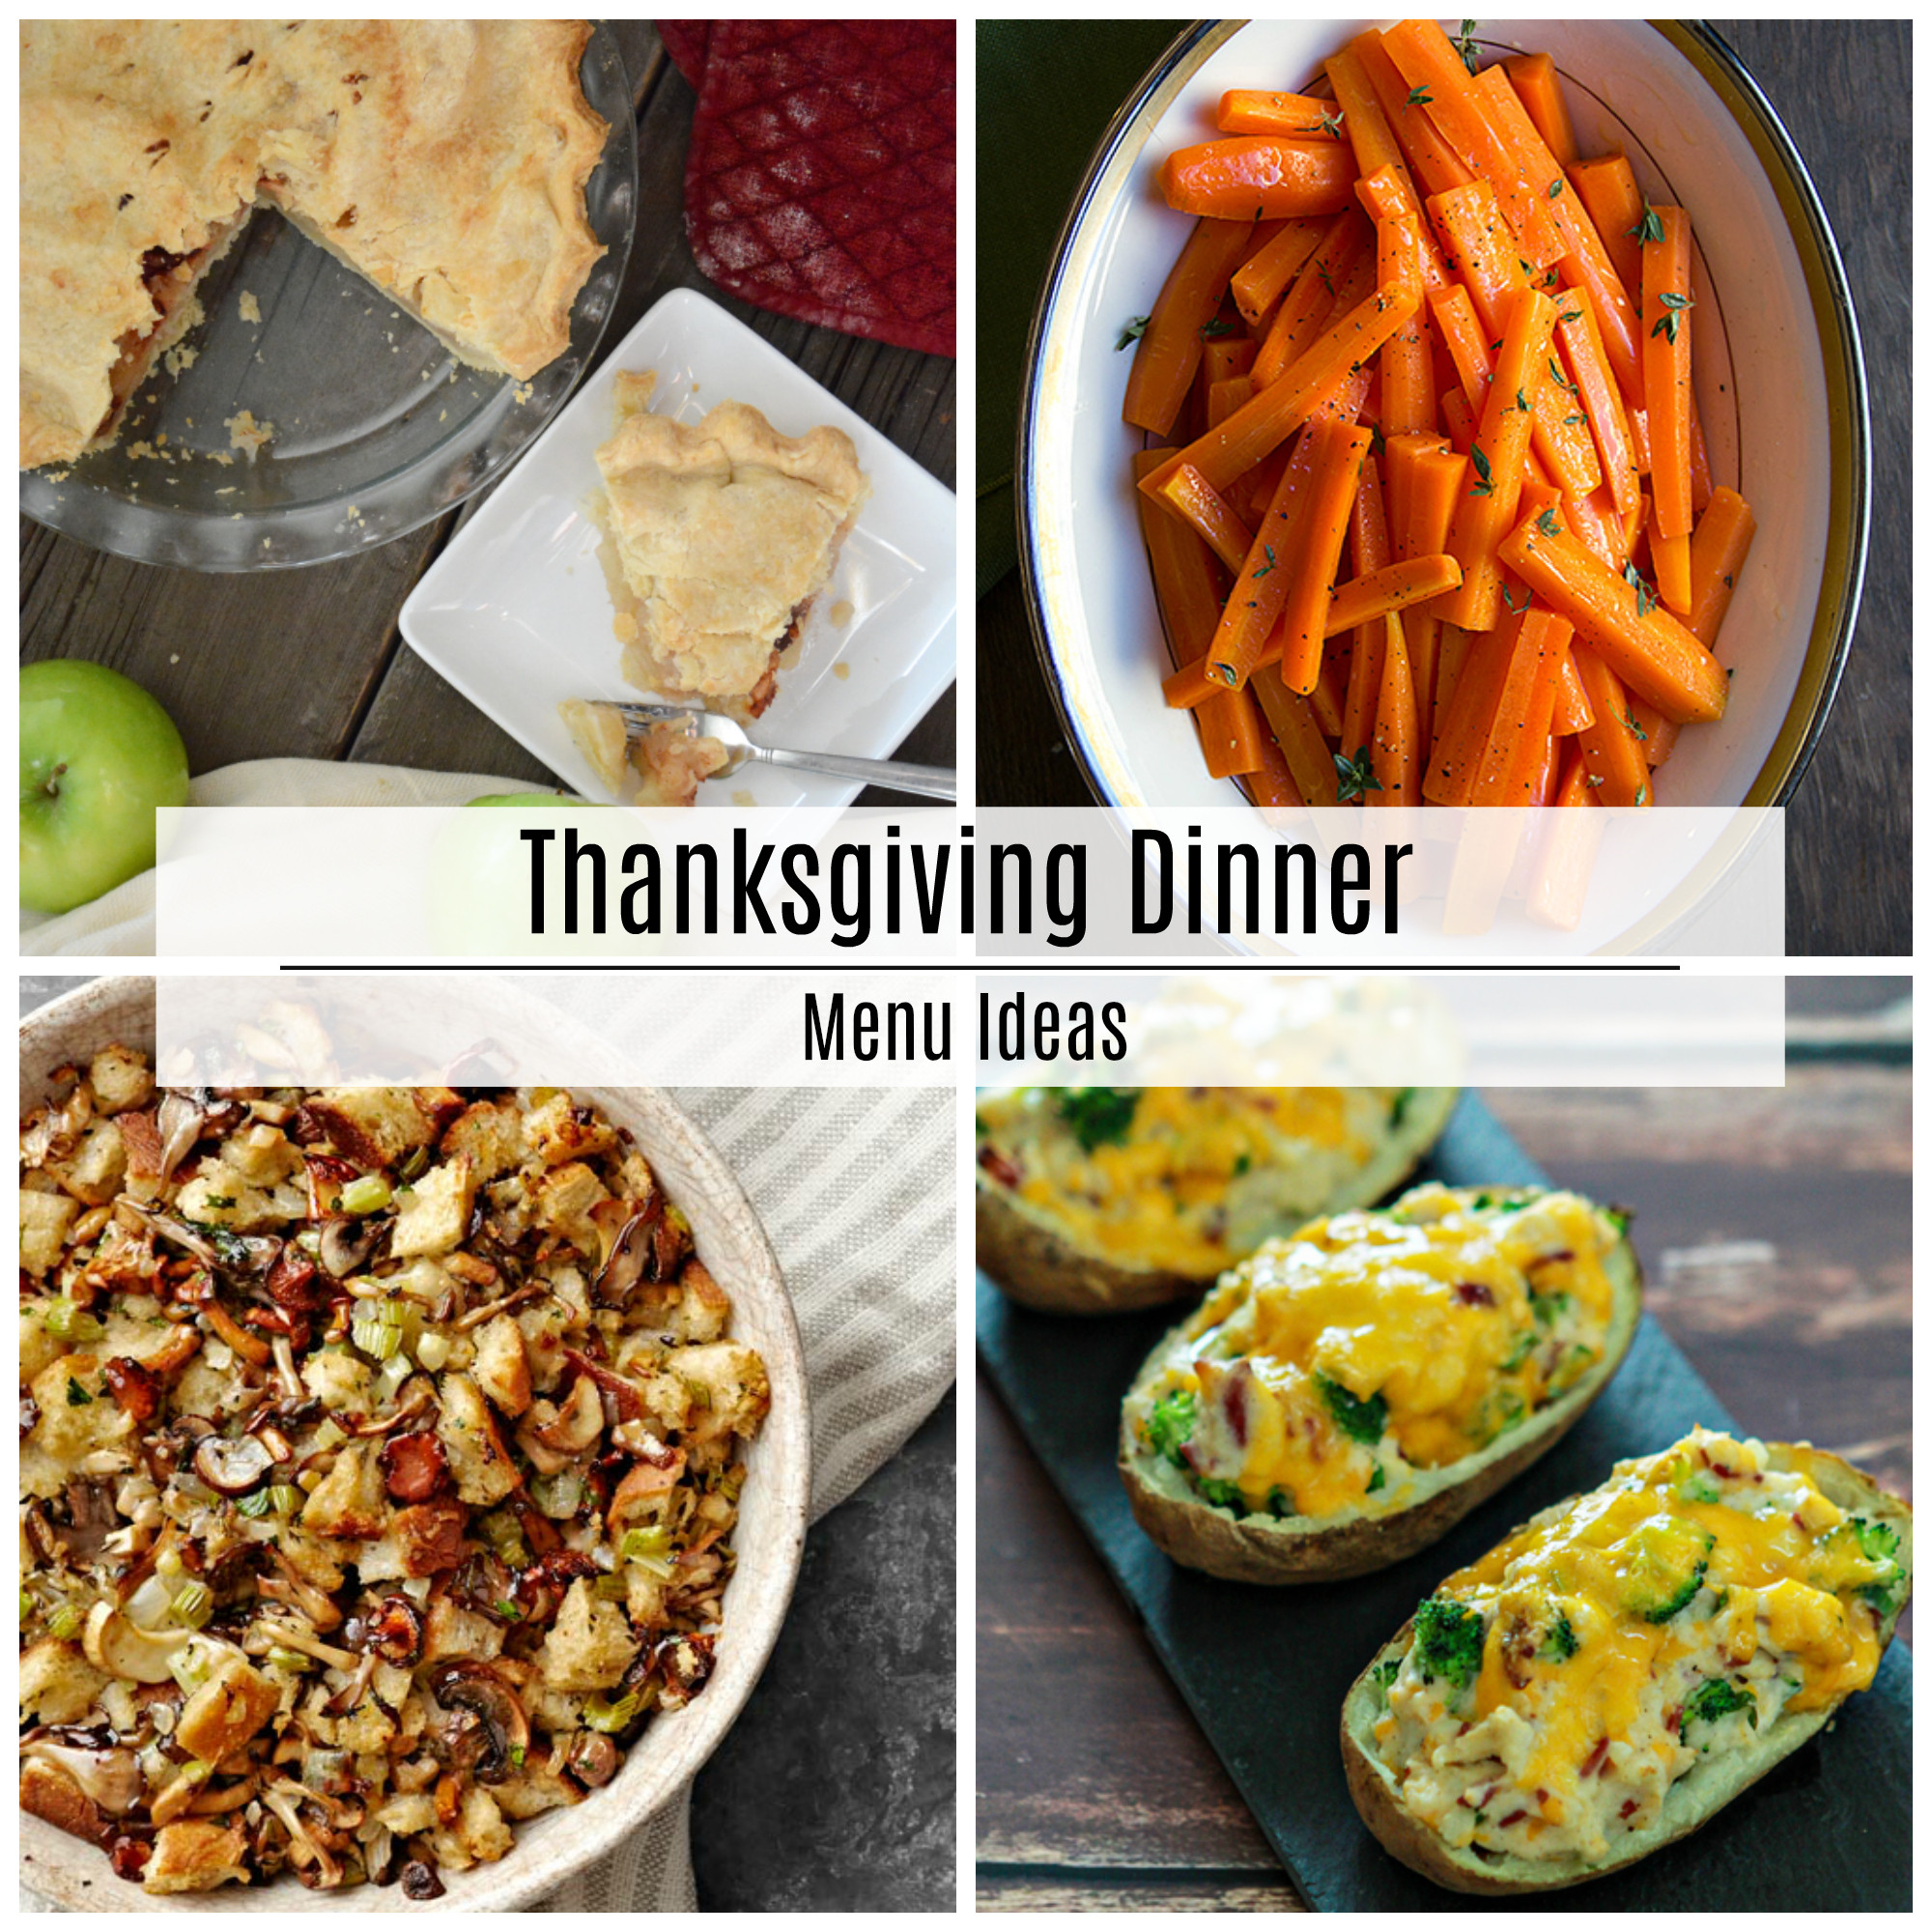 Thanksgiving Dinner Recipes  Thanksgiving Dinner Menu Recipe Ideas The Idea Room